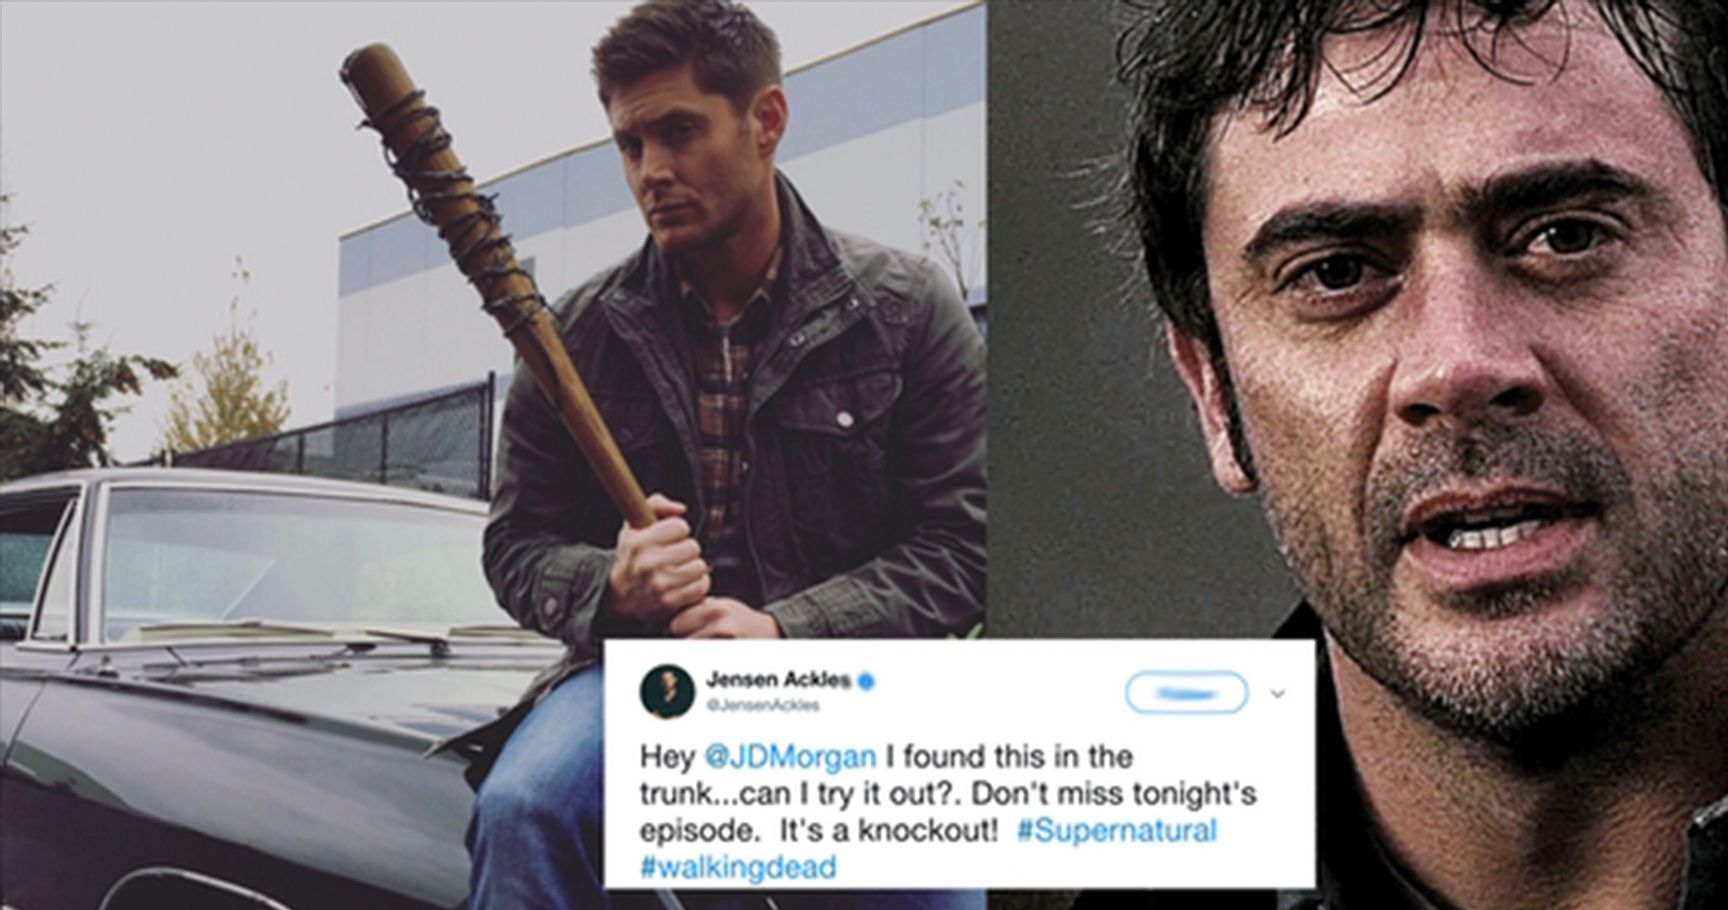 15 Sassy AF Tweets From The Cast Of 'Supernatural' That Are Pure Gold